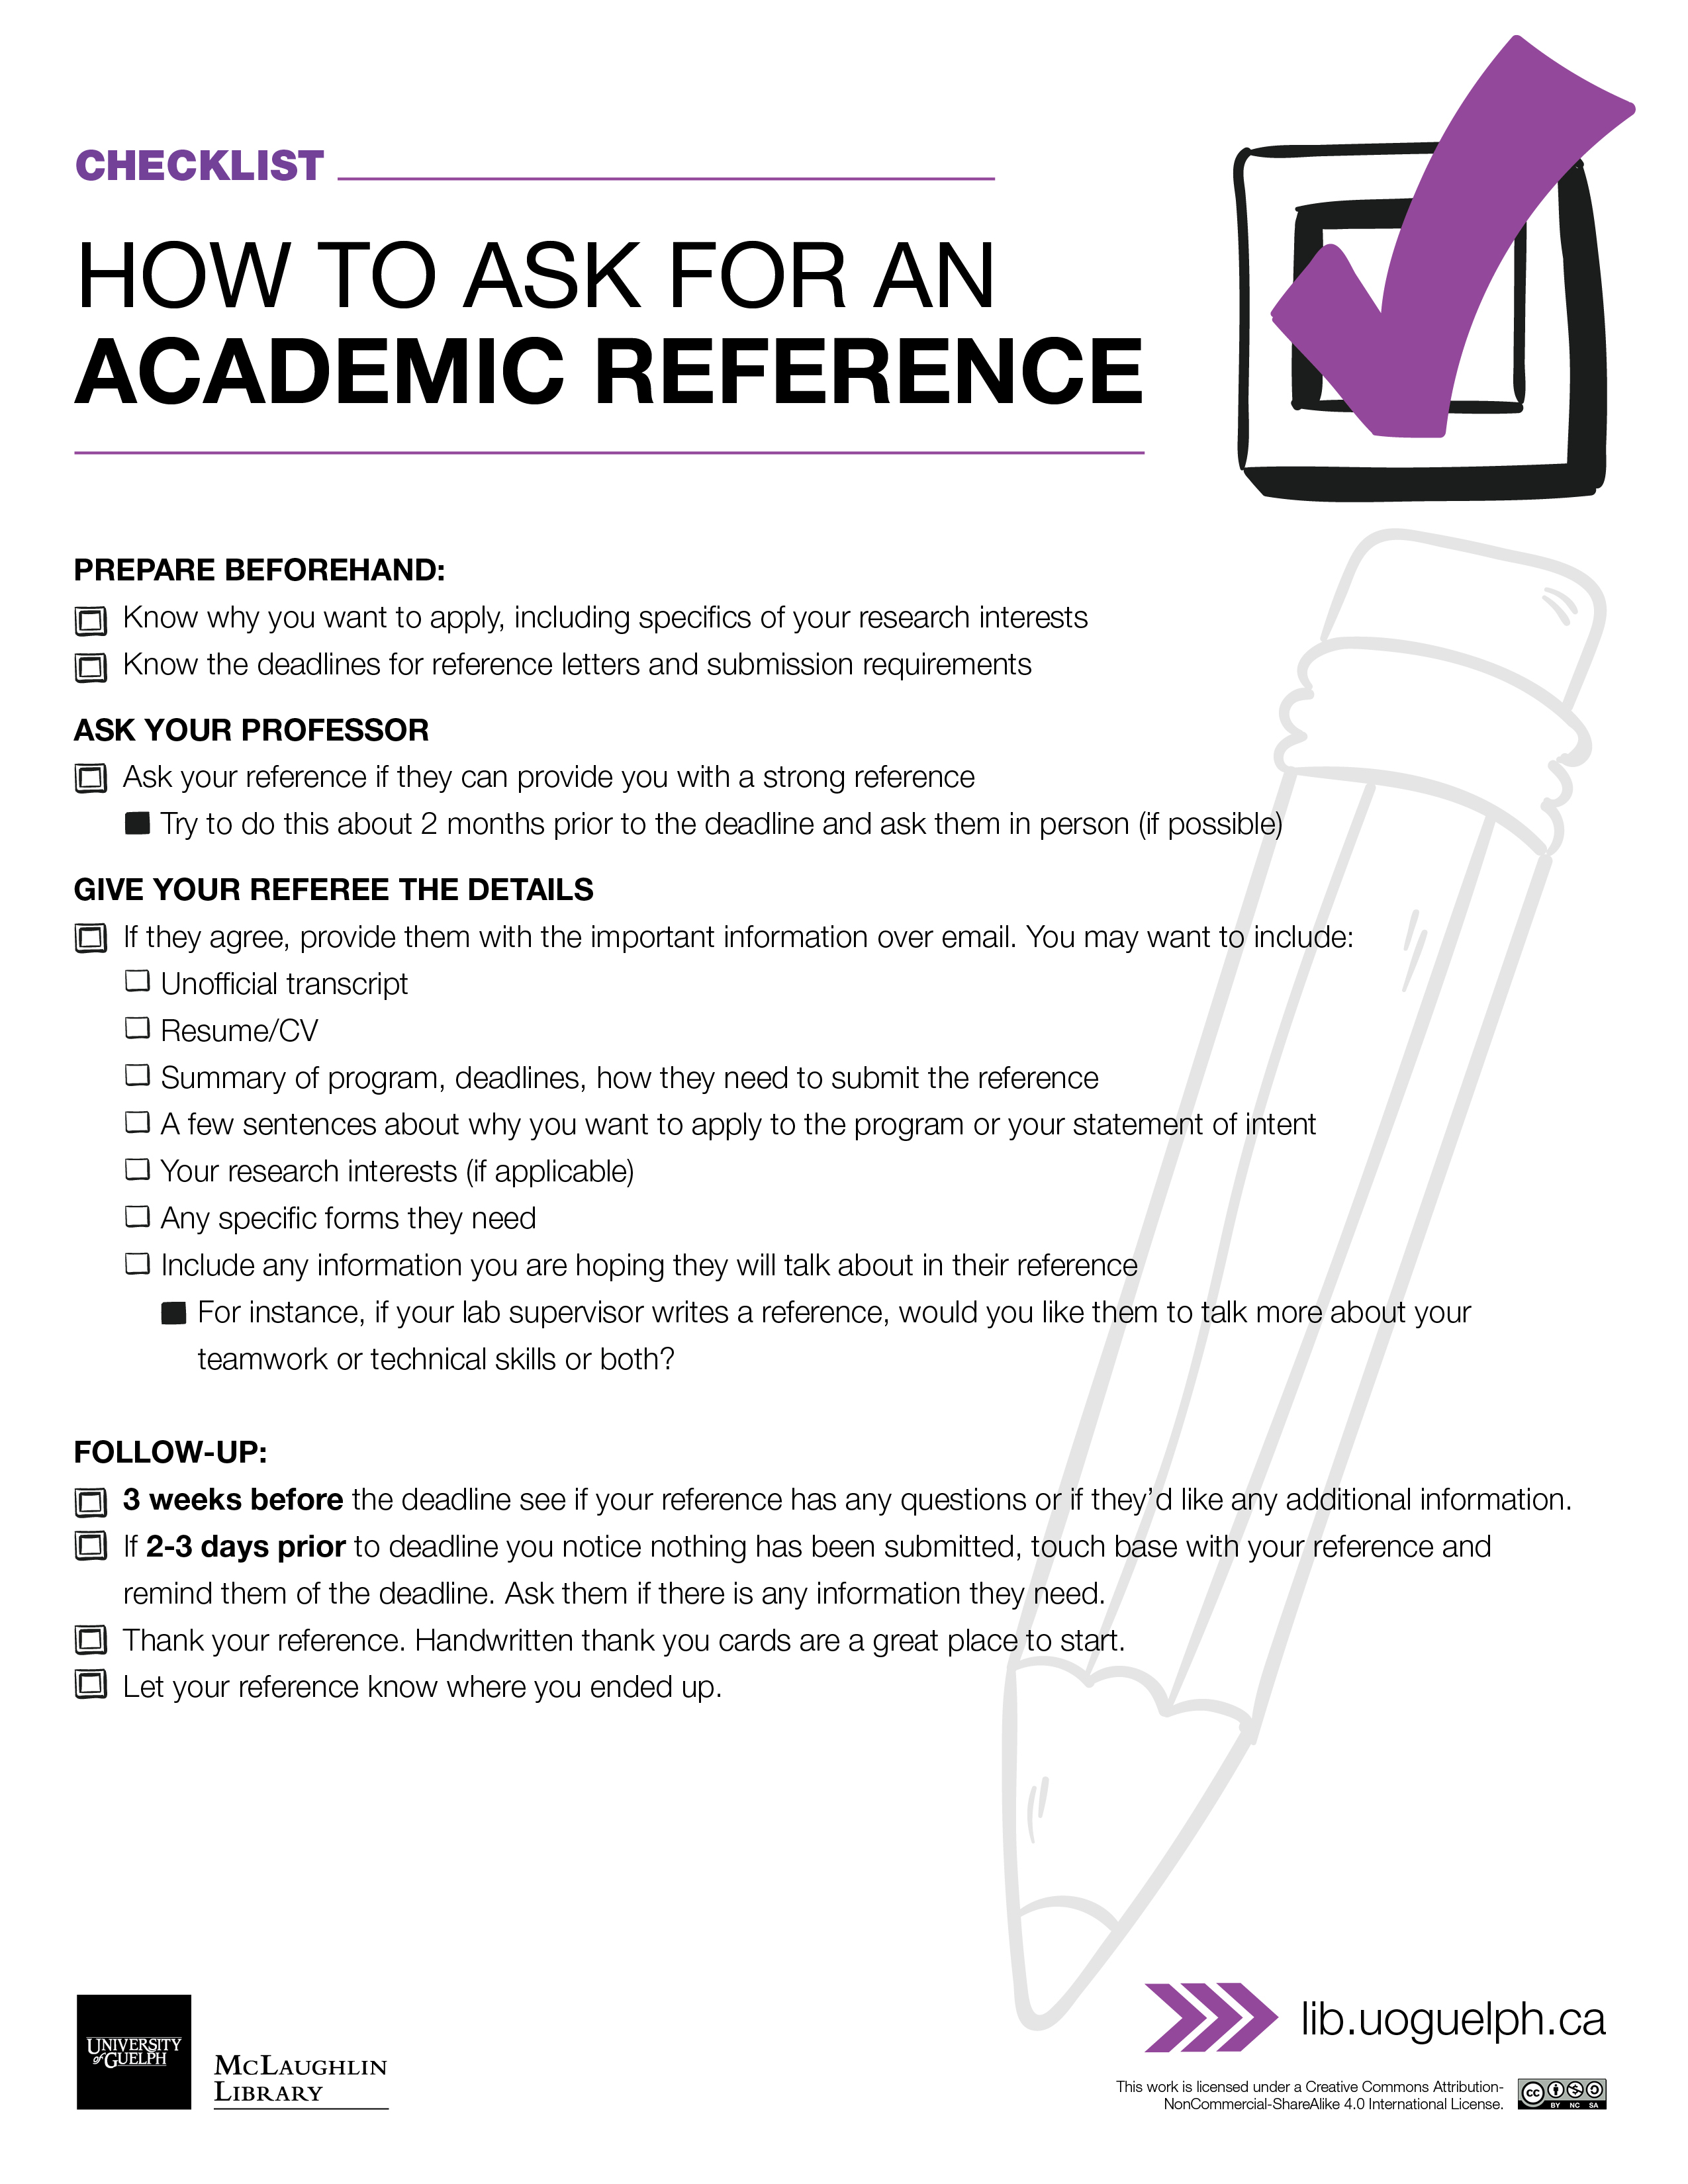 Handout: How to ask for an Academic Reference. See transcript below.